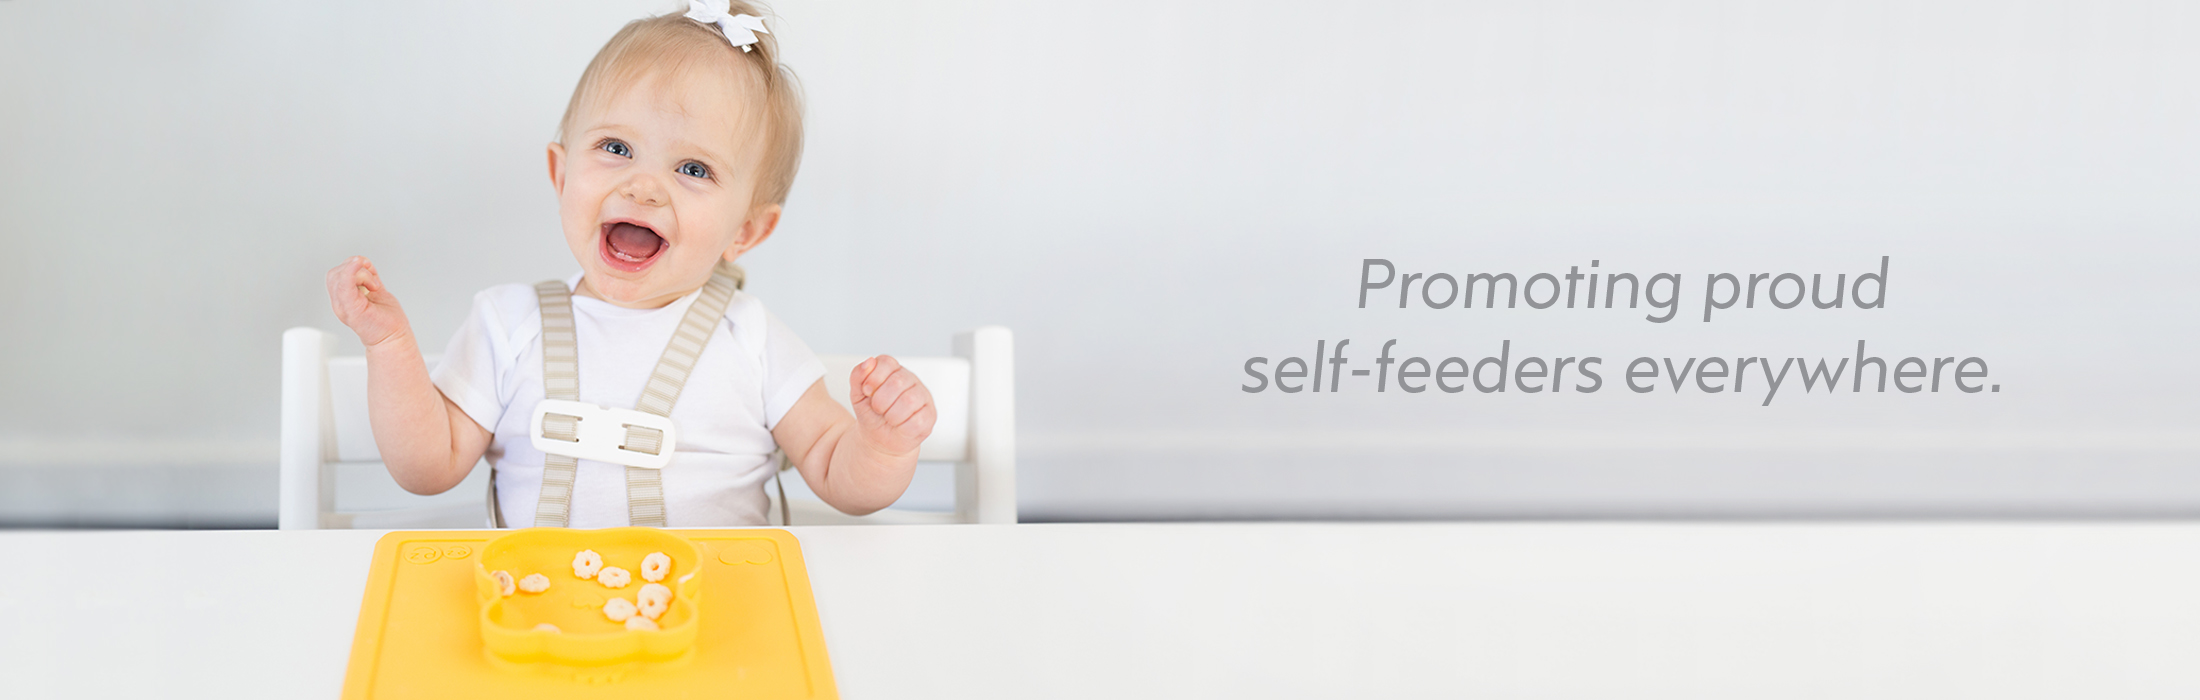 silicone and disposable placemat to promote self feeding everywhere